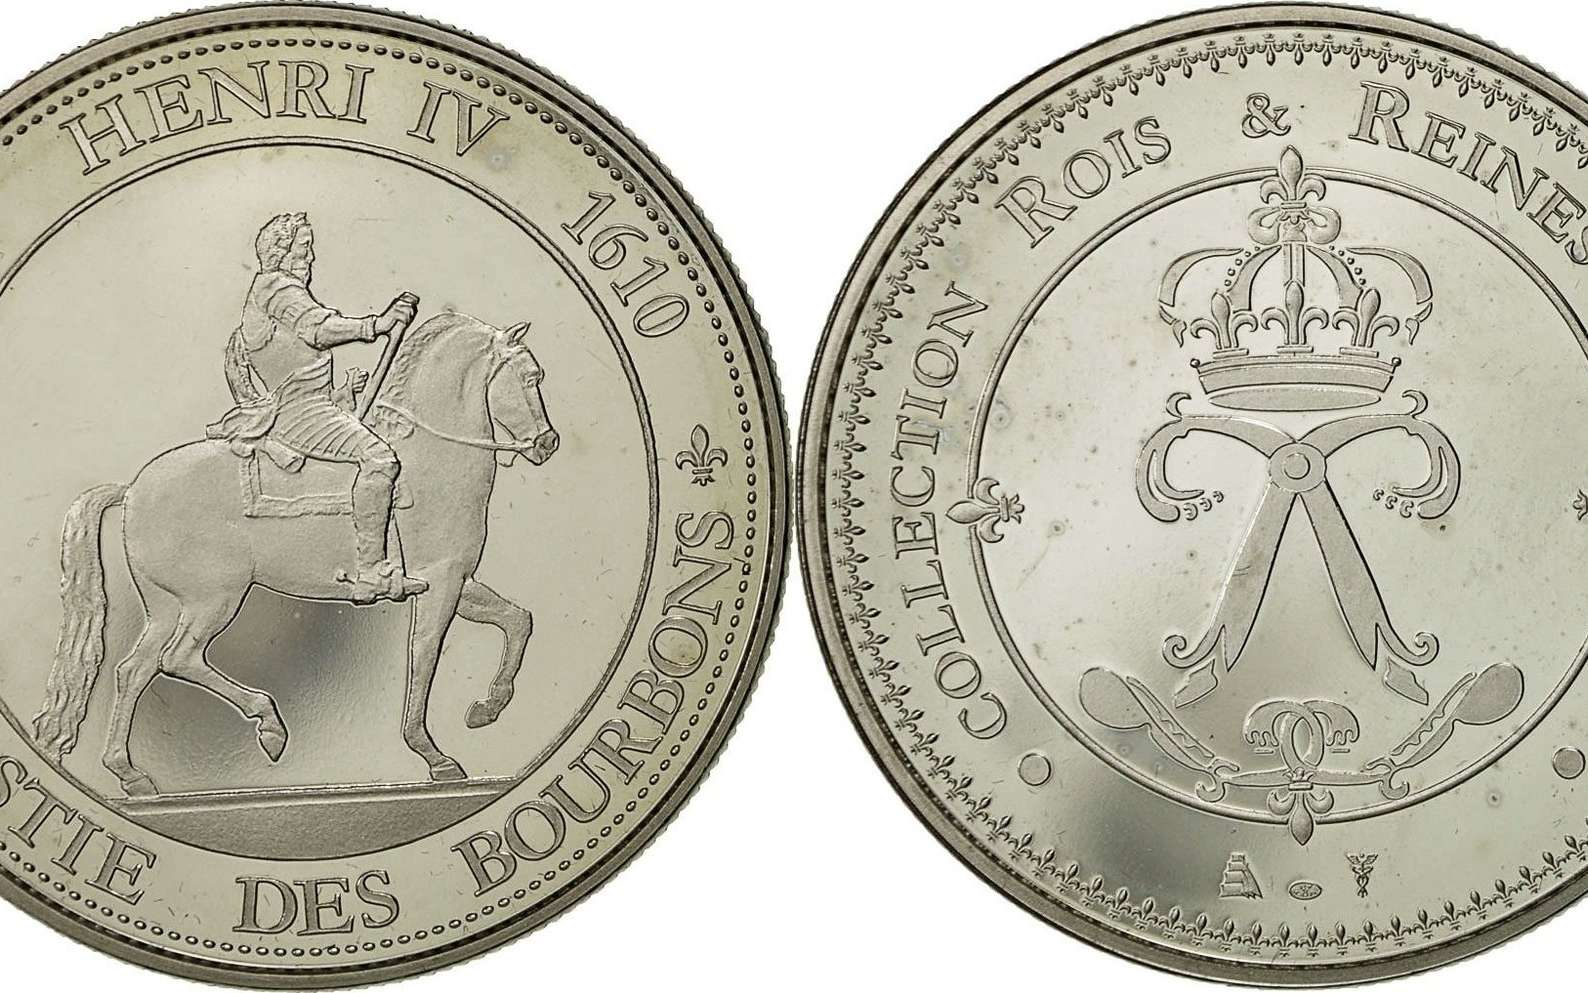 Médaille France Henri IV, dynastie des Bourbons. © Nickel MS(64), Google images